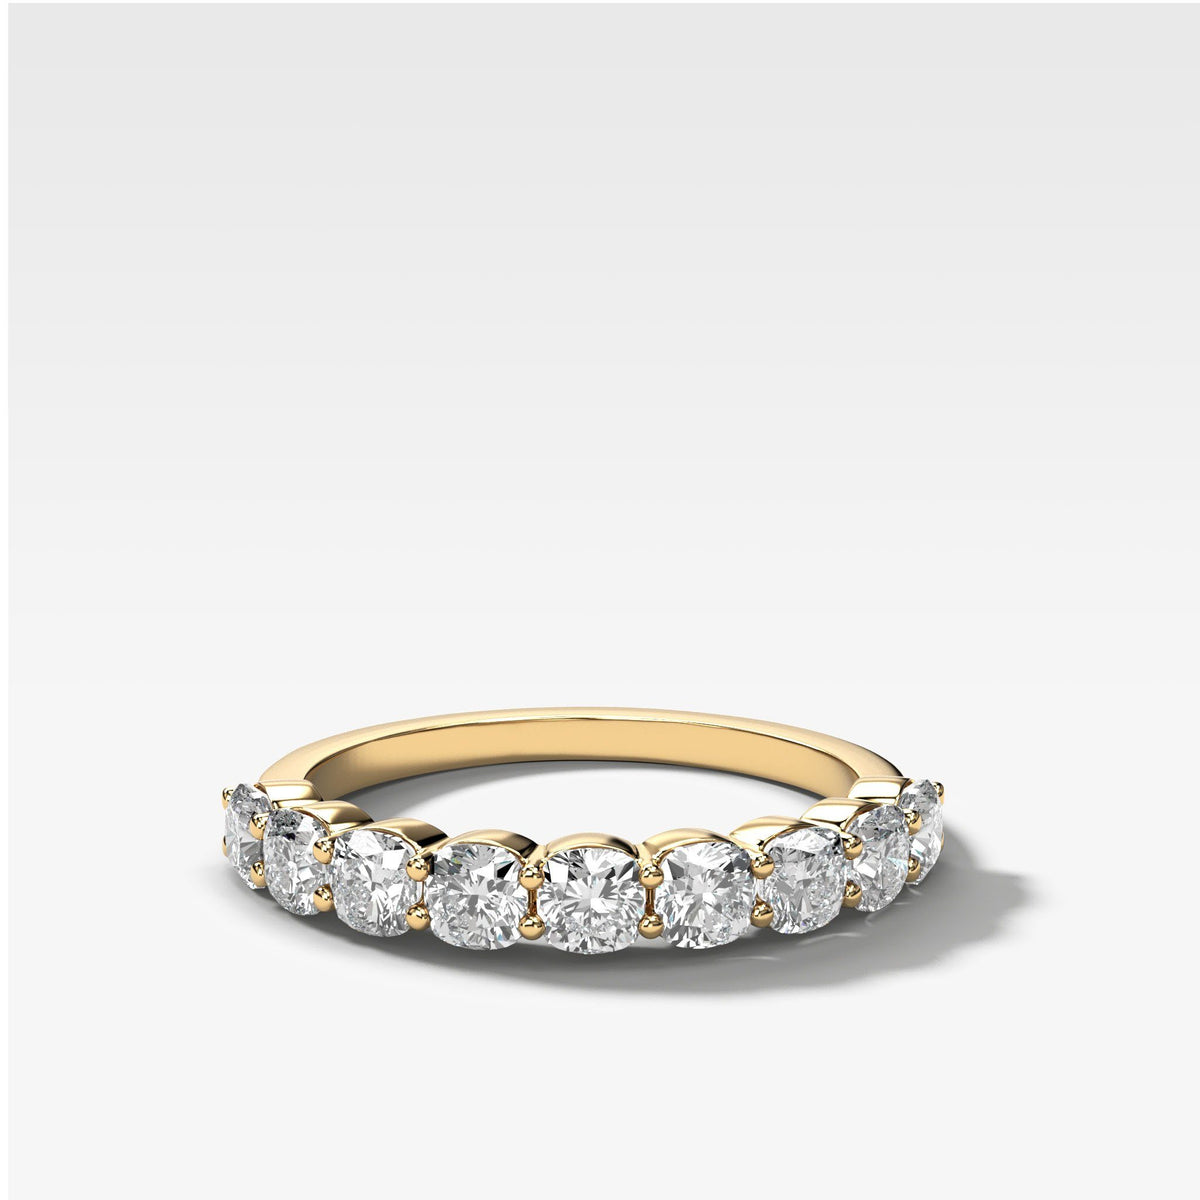 Cushion Cut Shared Prong Stacker in Yellow Gold by Good Stone